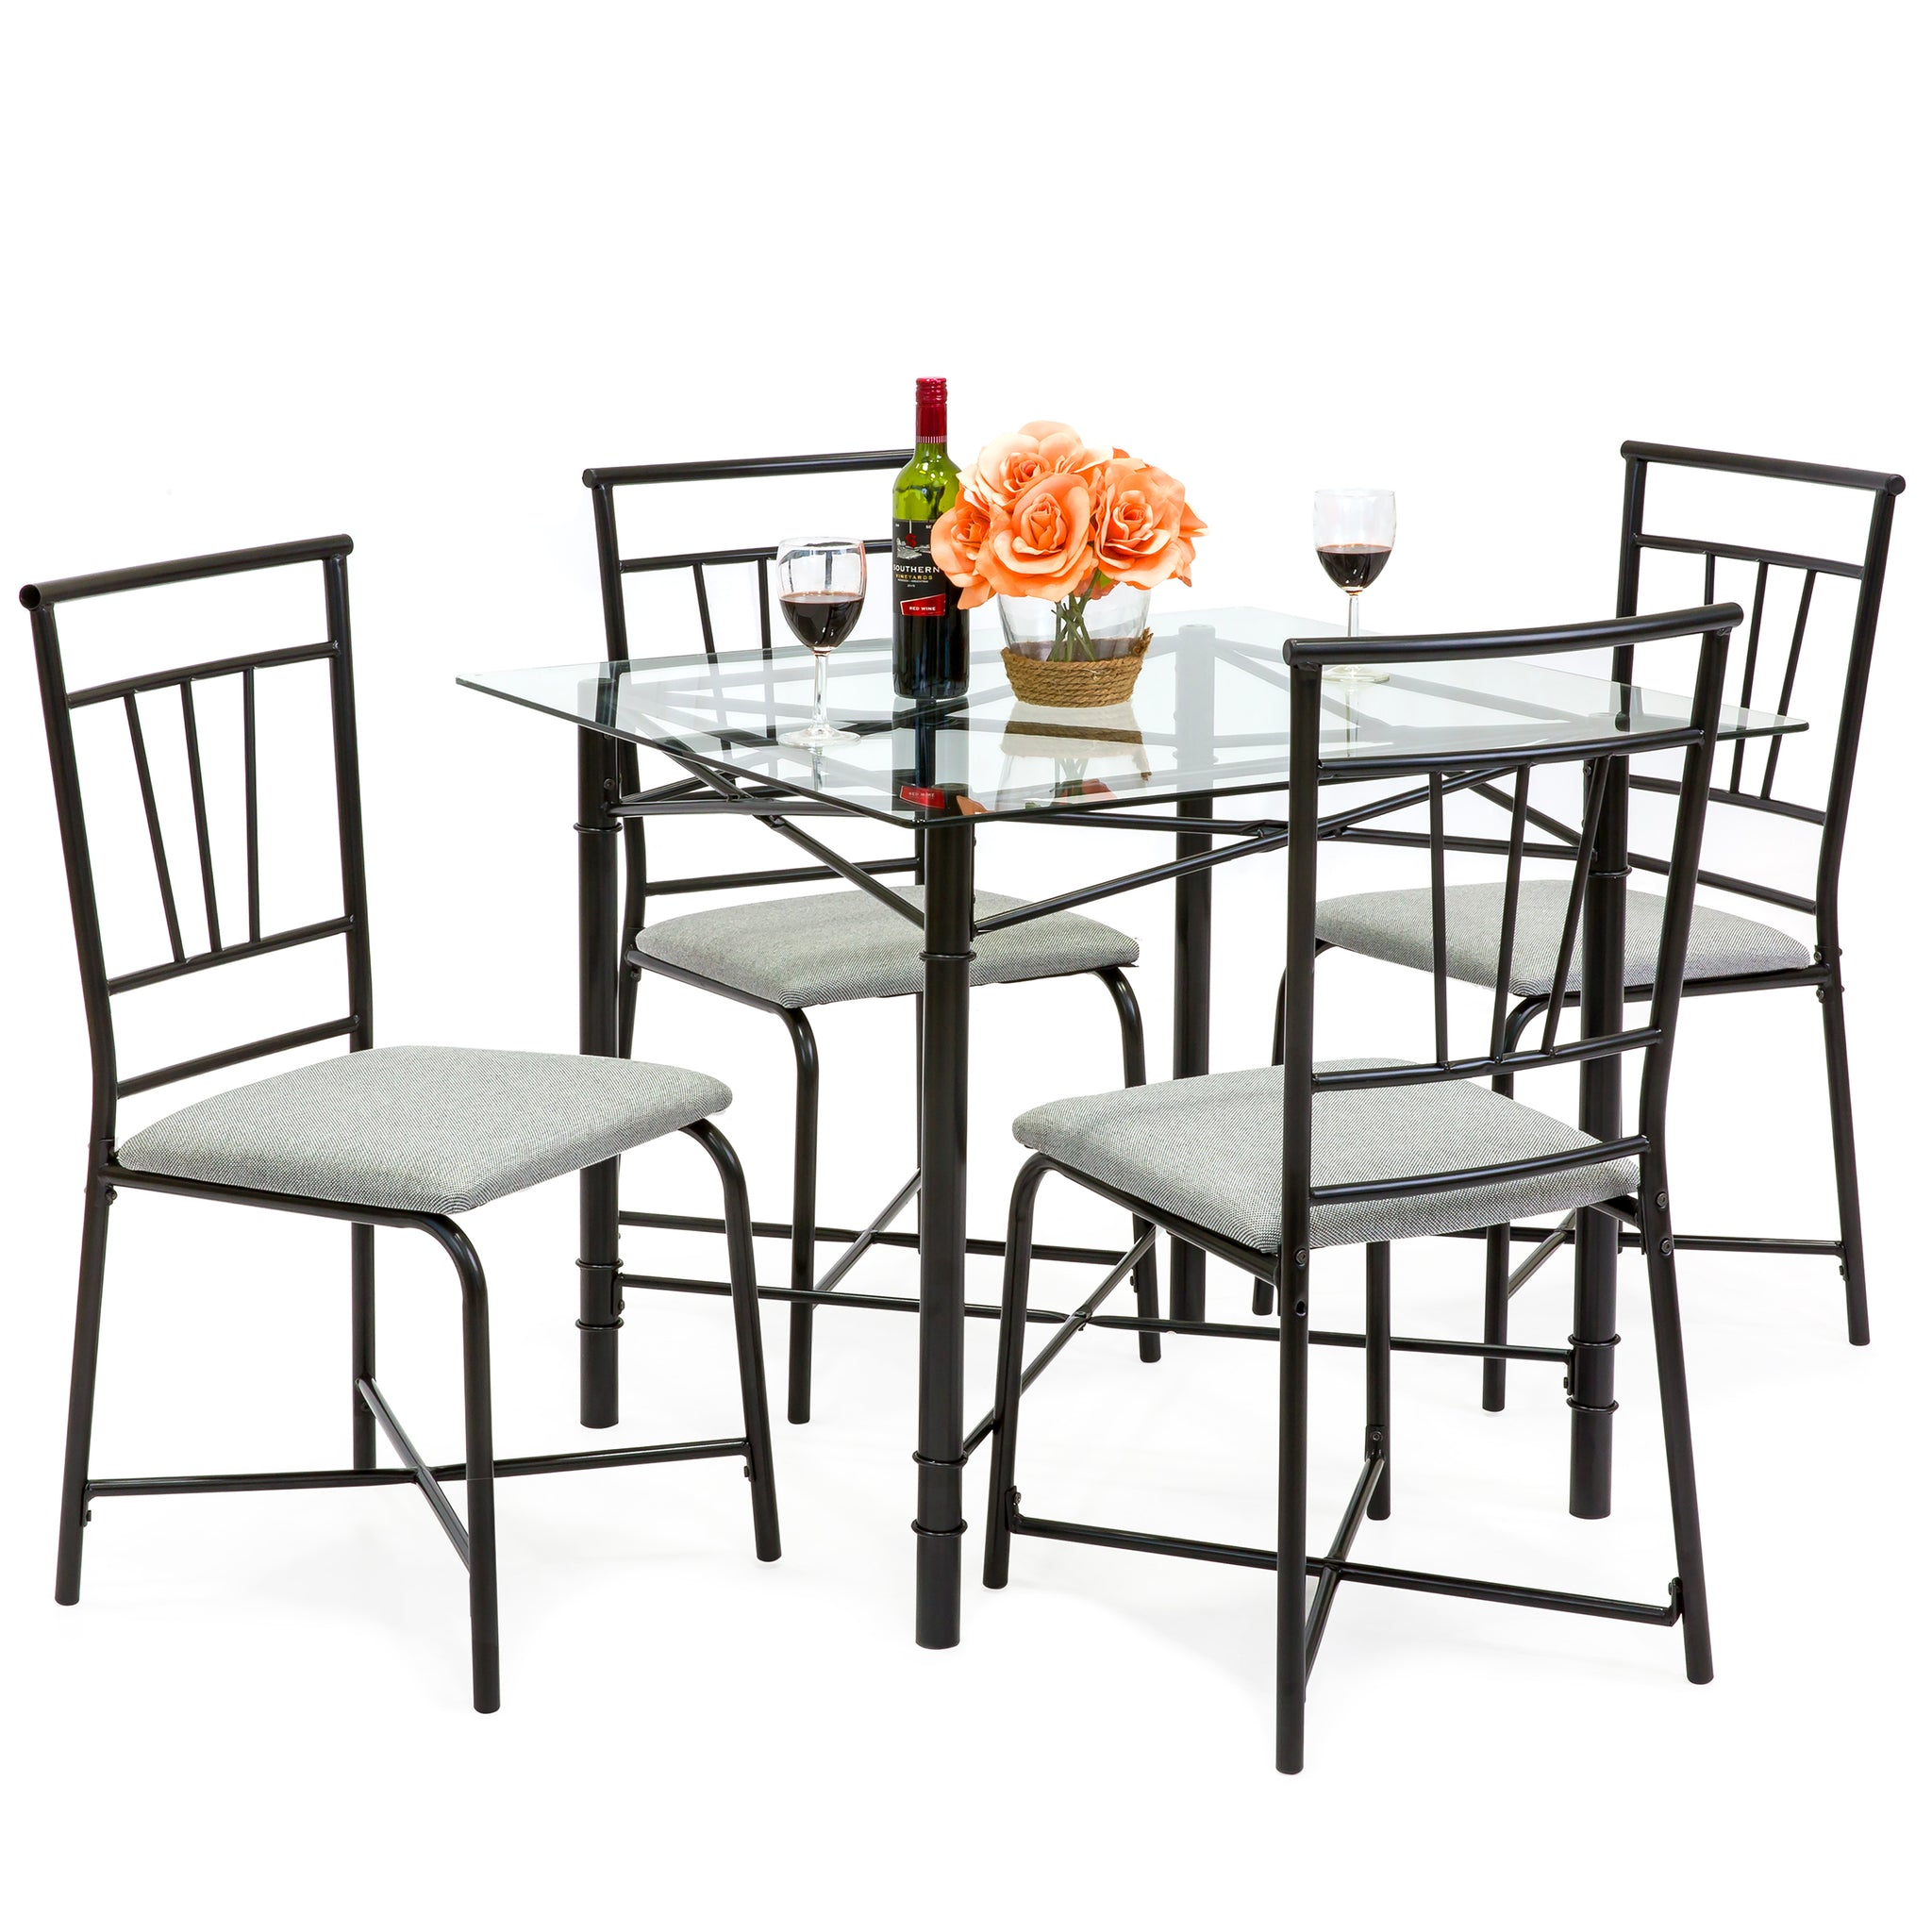 5 piece square glass dining table set w 4 upholstered chairs - Square Glass Dining Table